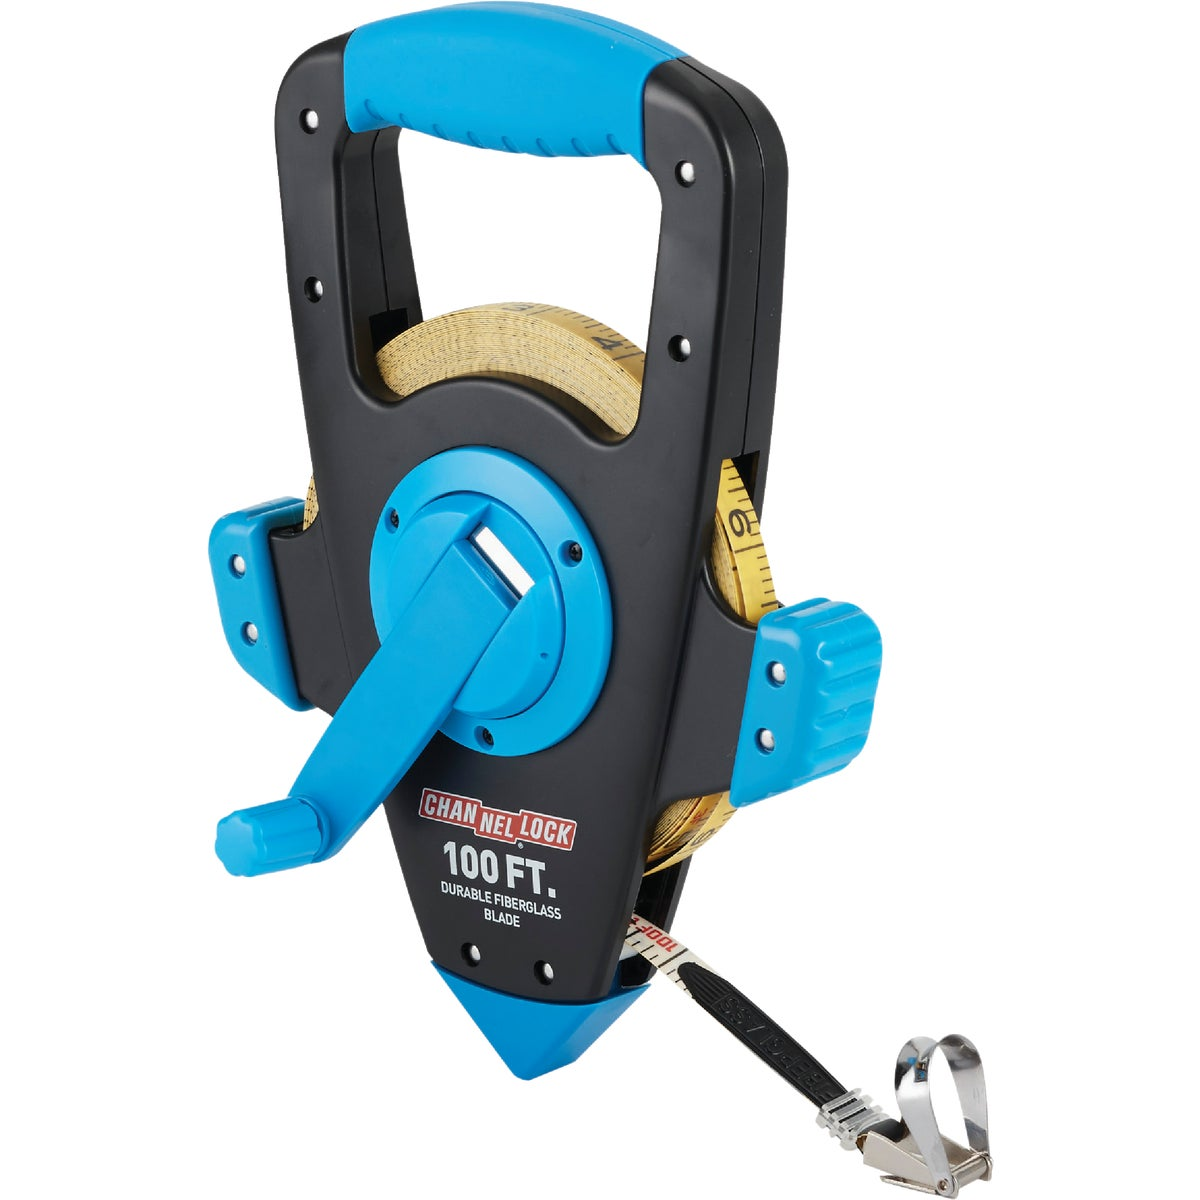 100' CHANNELLOCK  REEL - CL6611 by Channellock Products